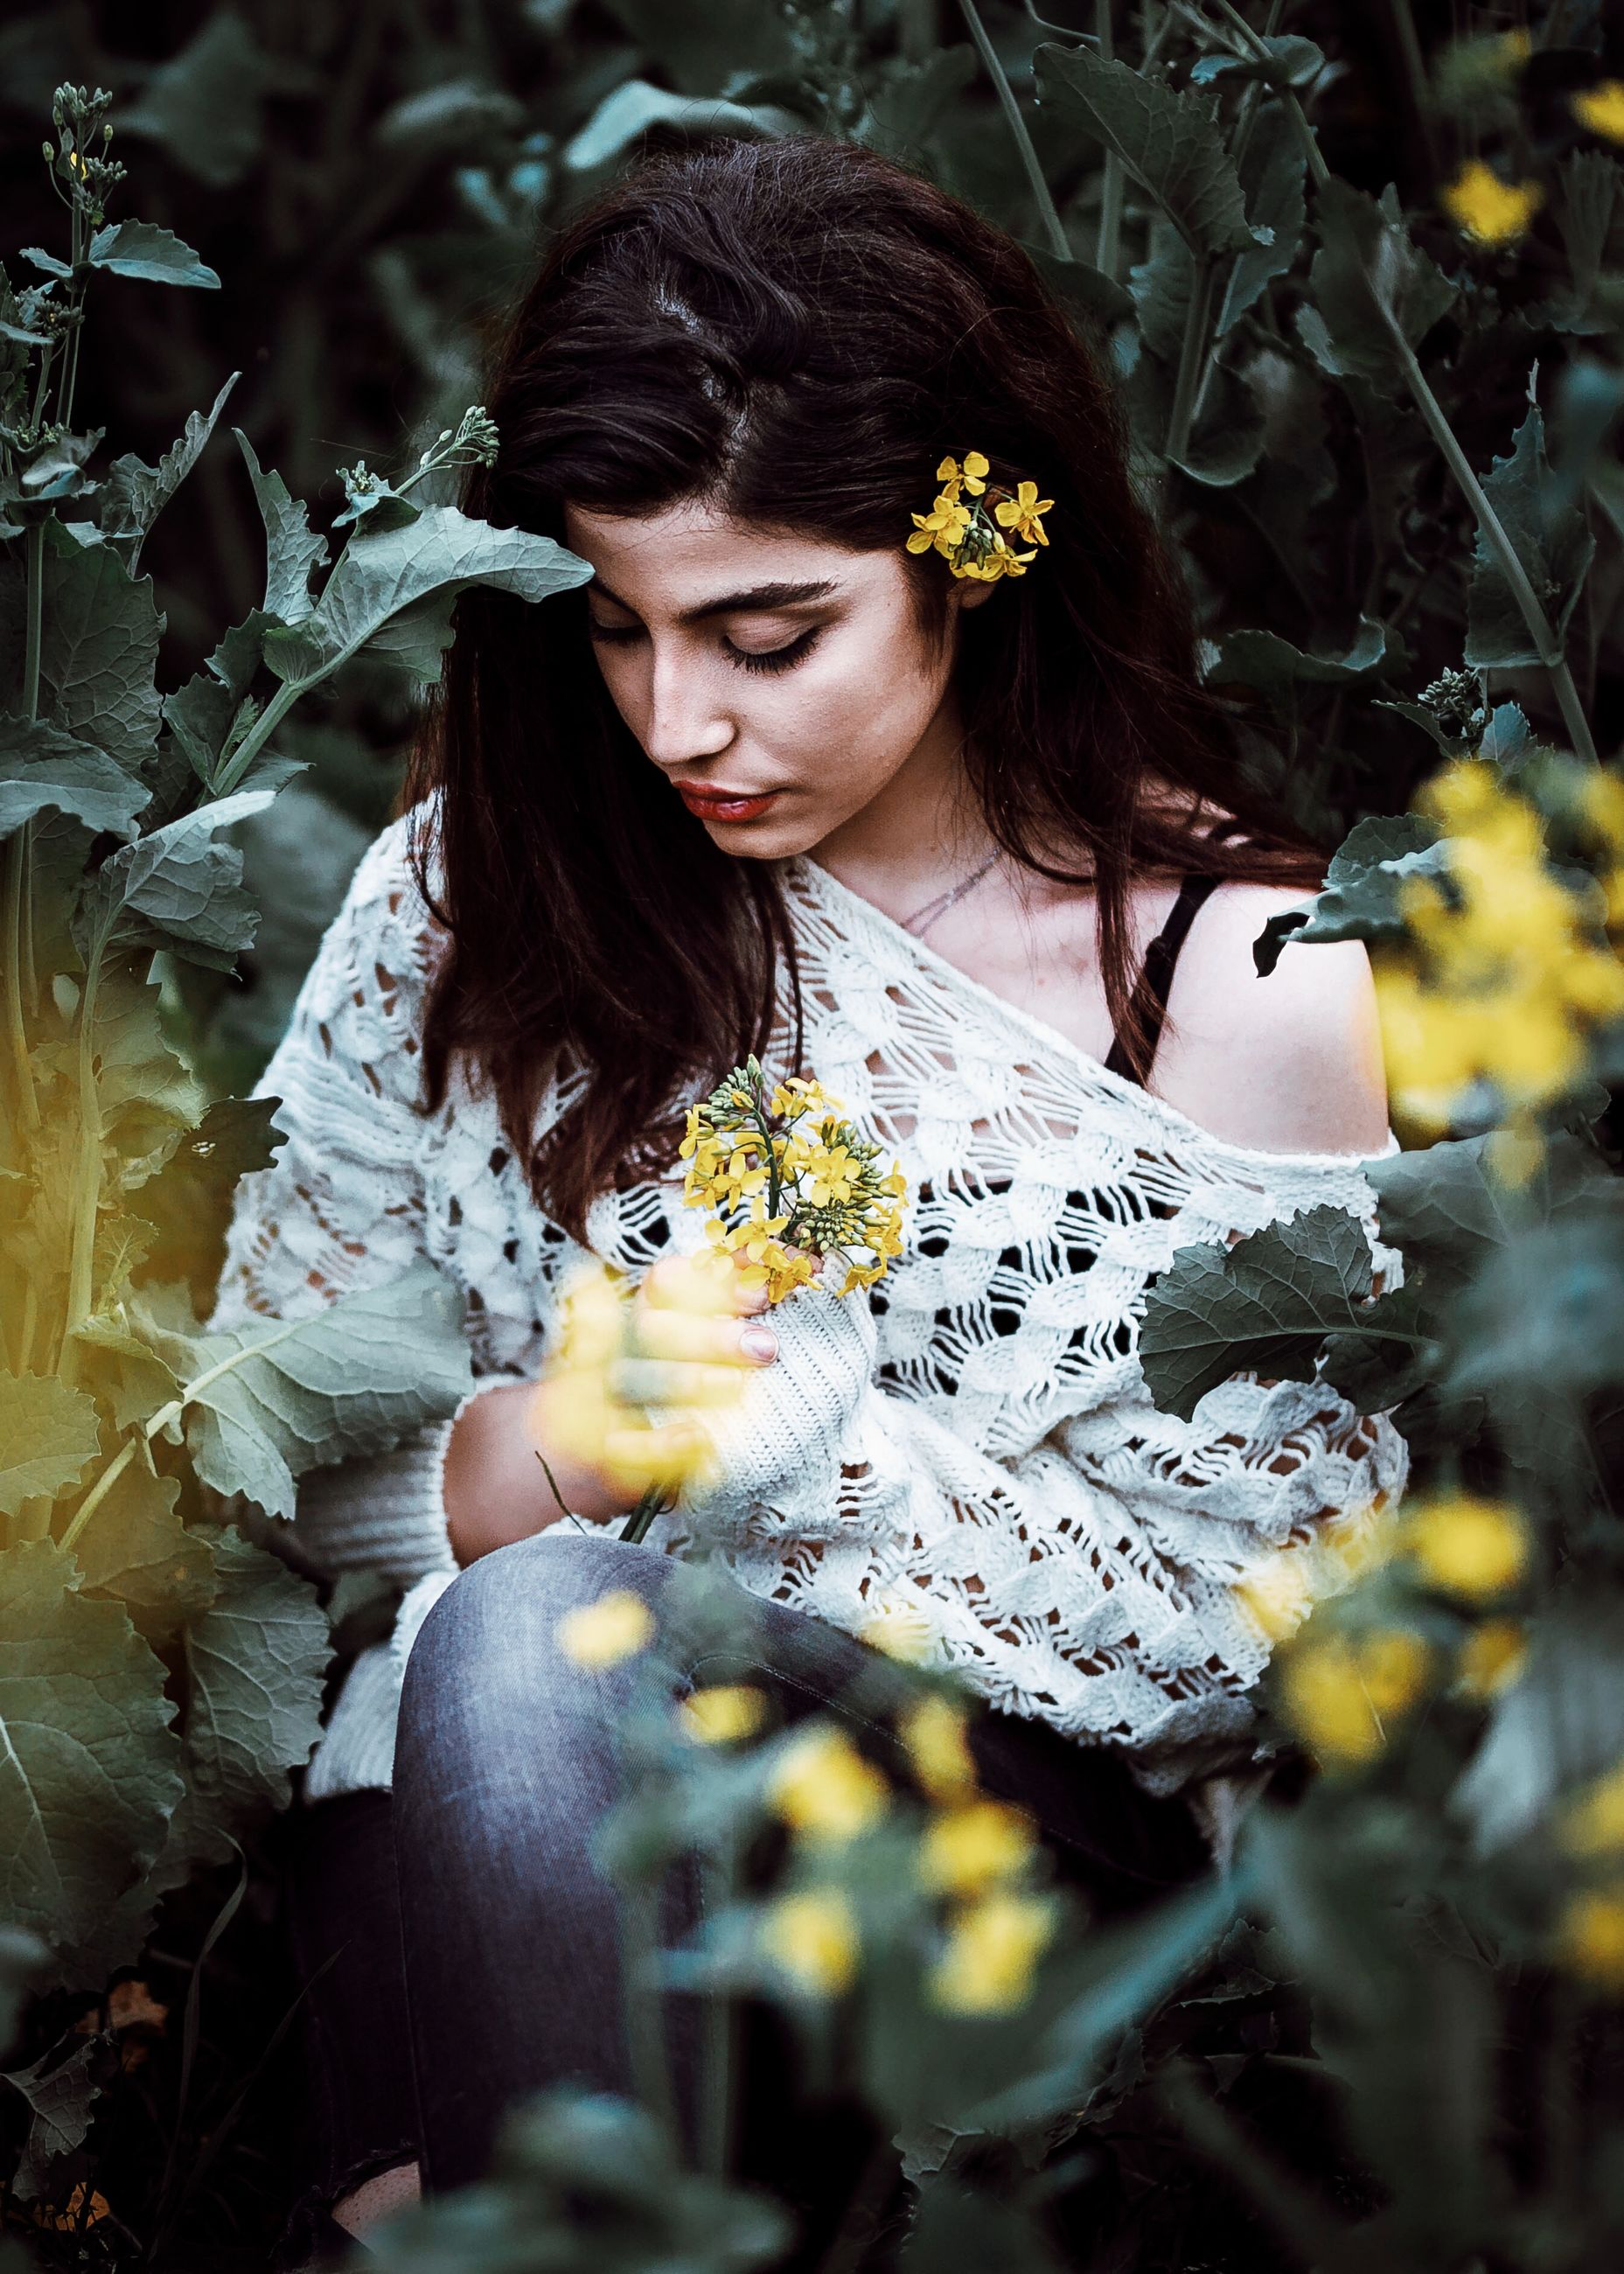 young adult, one person, real people, young women, flower, beautiful woman, outdoors, leisure activity, day, nature, lifestyles, plant, leaf, beauty in nature, fragility, one young woman only, tree, freshness, people